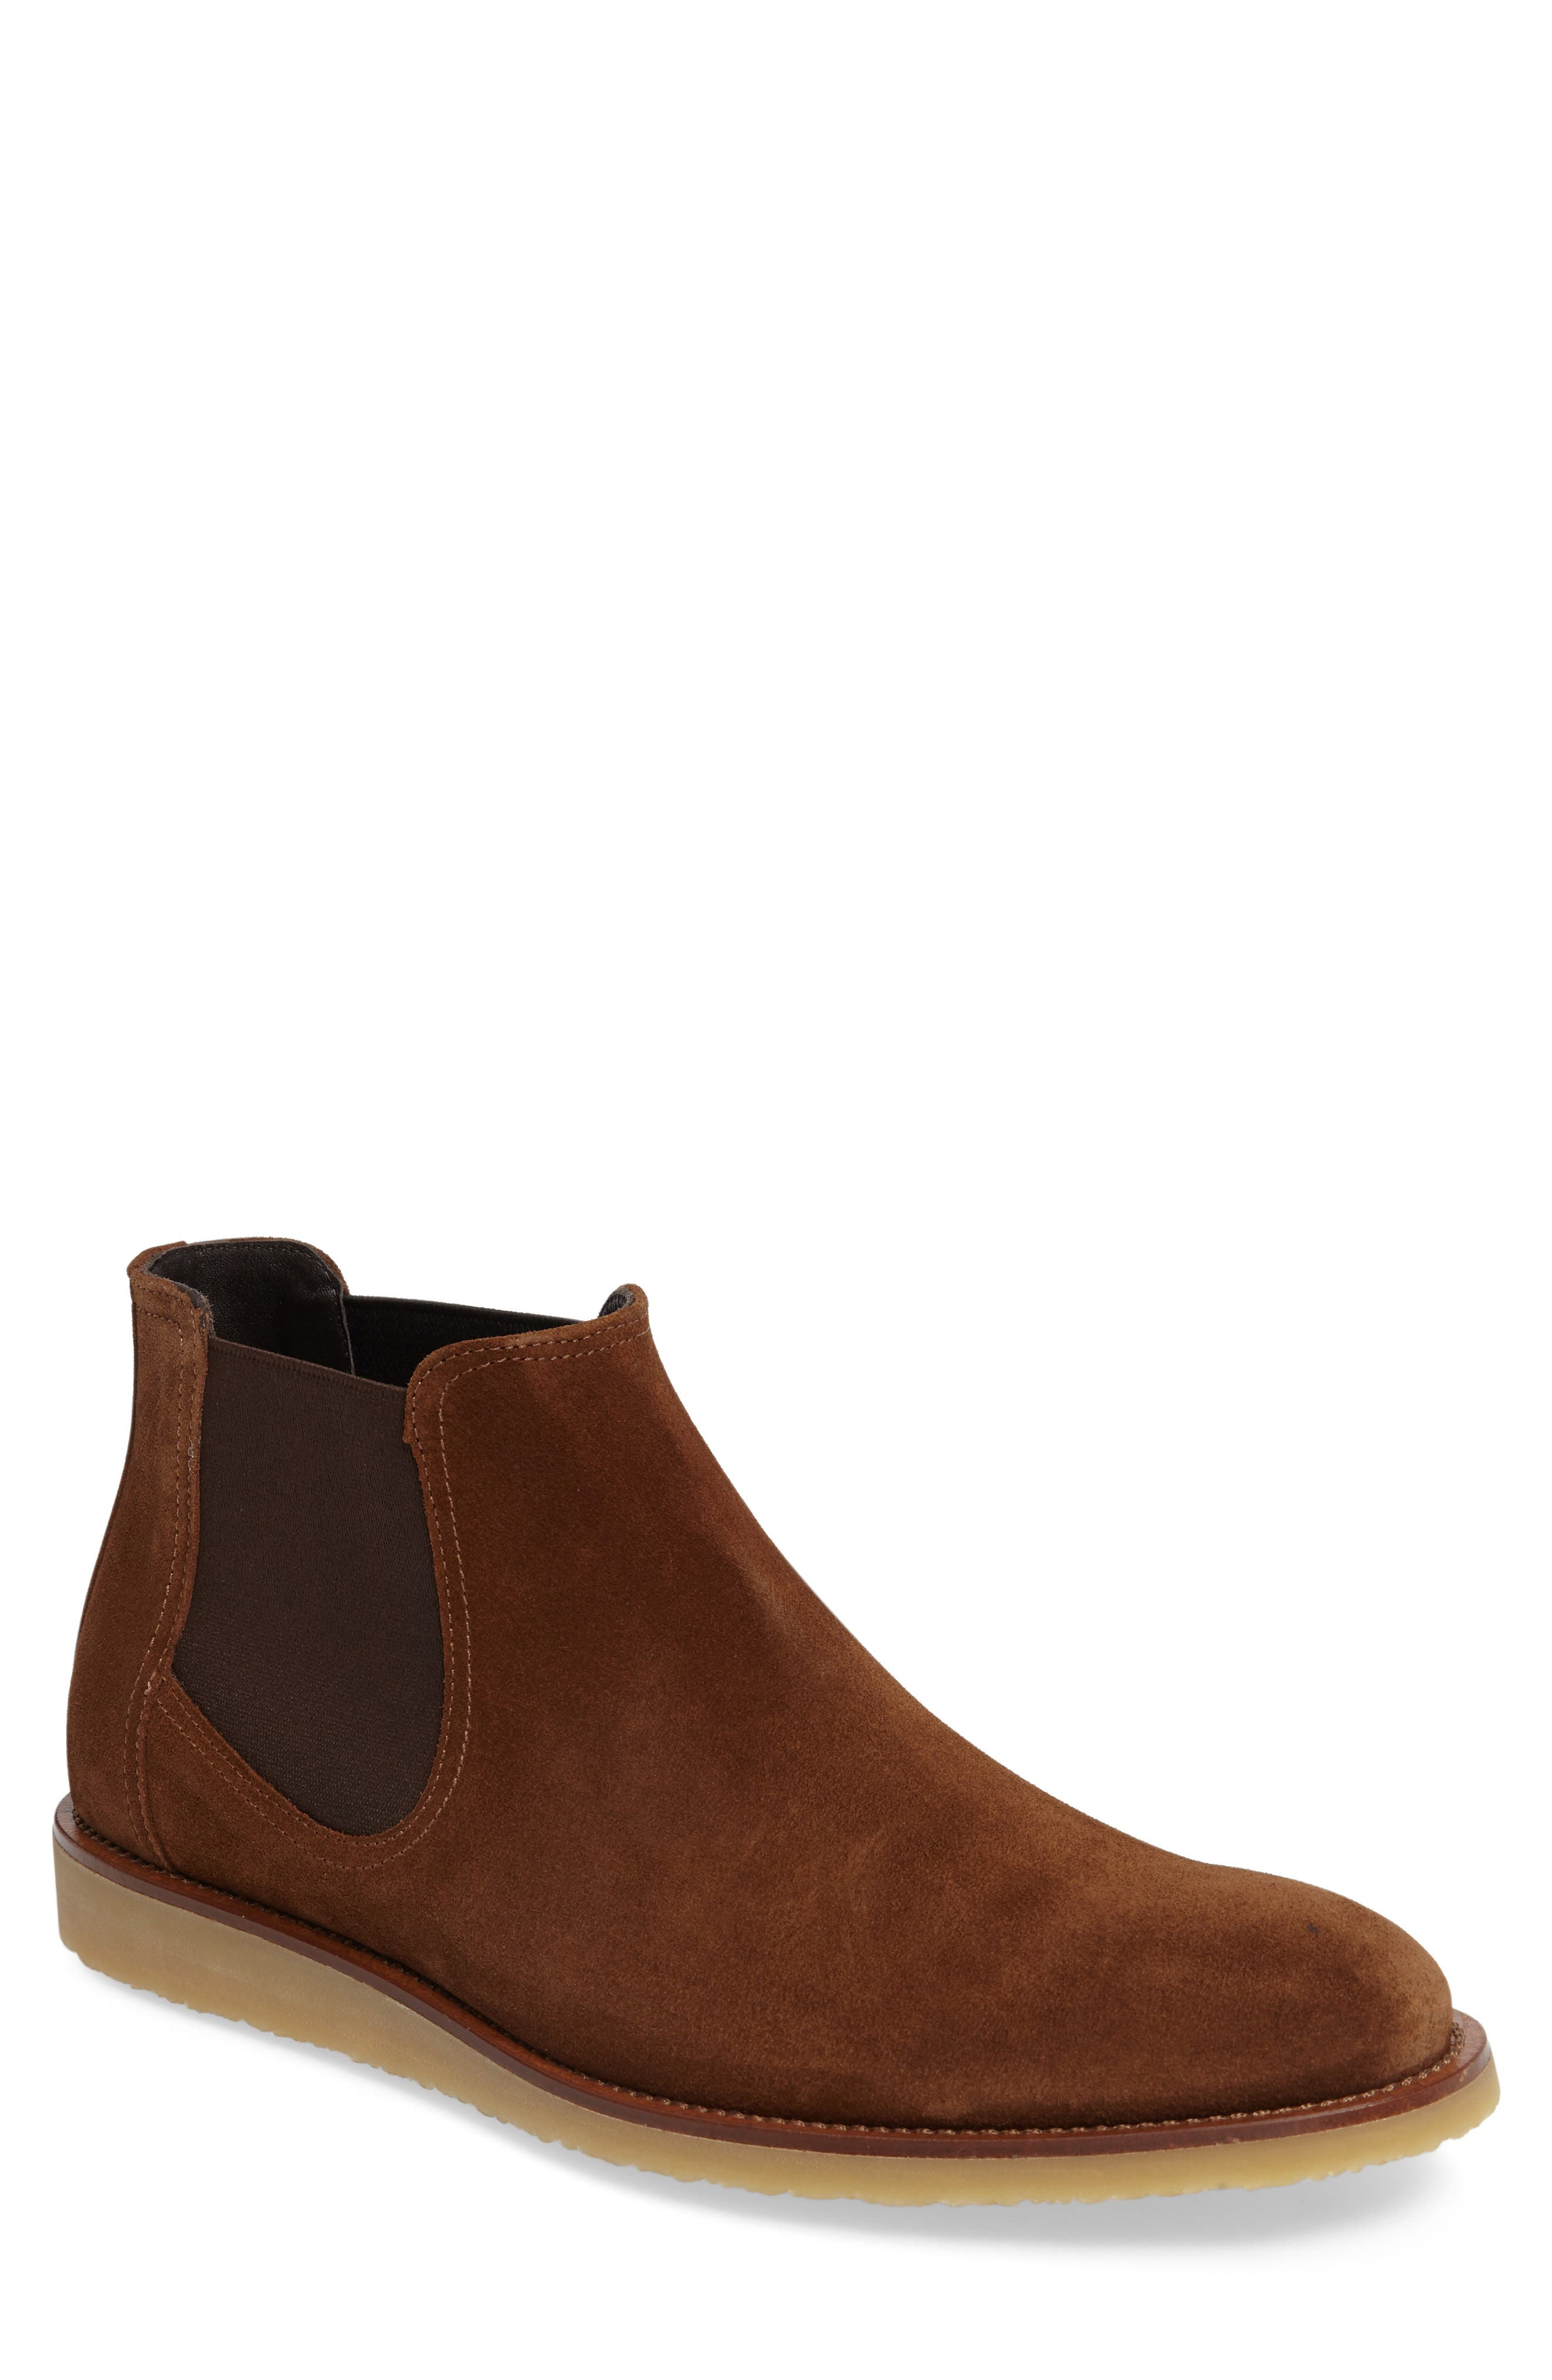 March Chelsea Boot,                             Main thumbnail 1, color,                             Brown/ Brown Suede